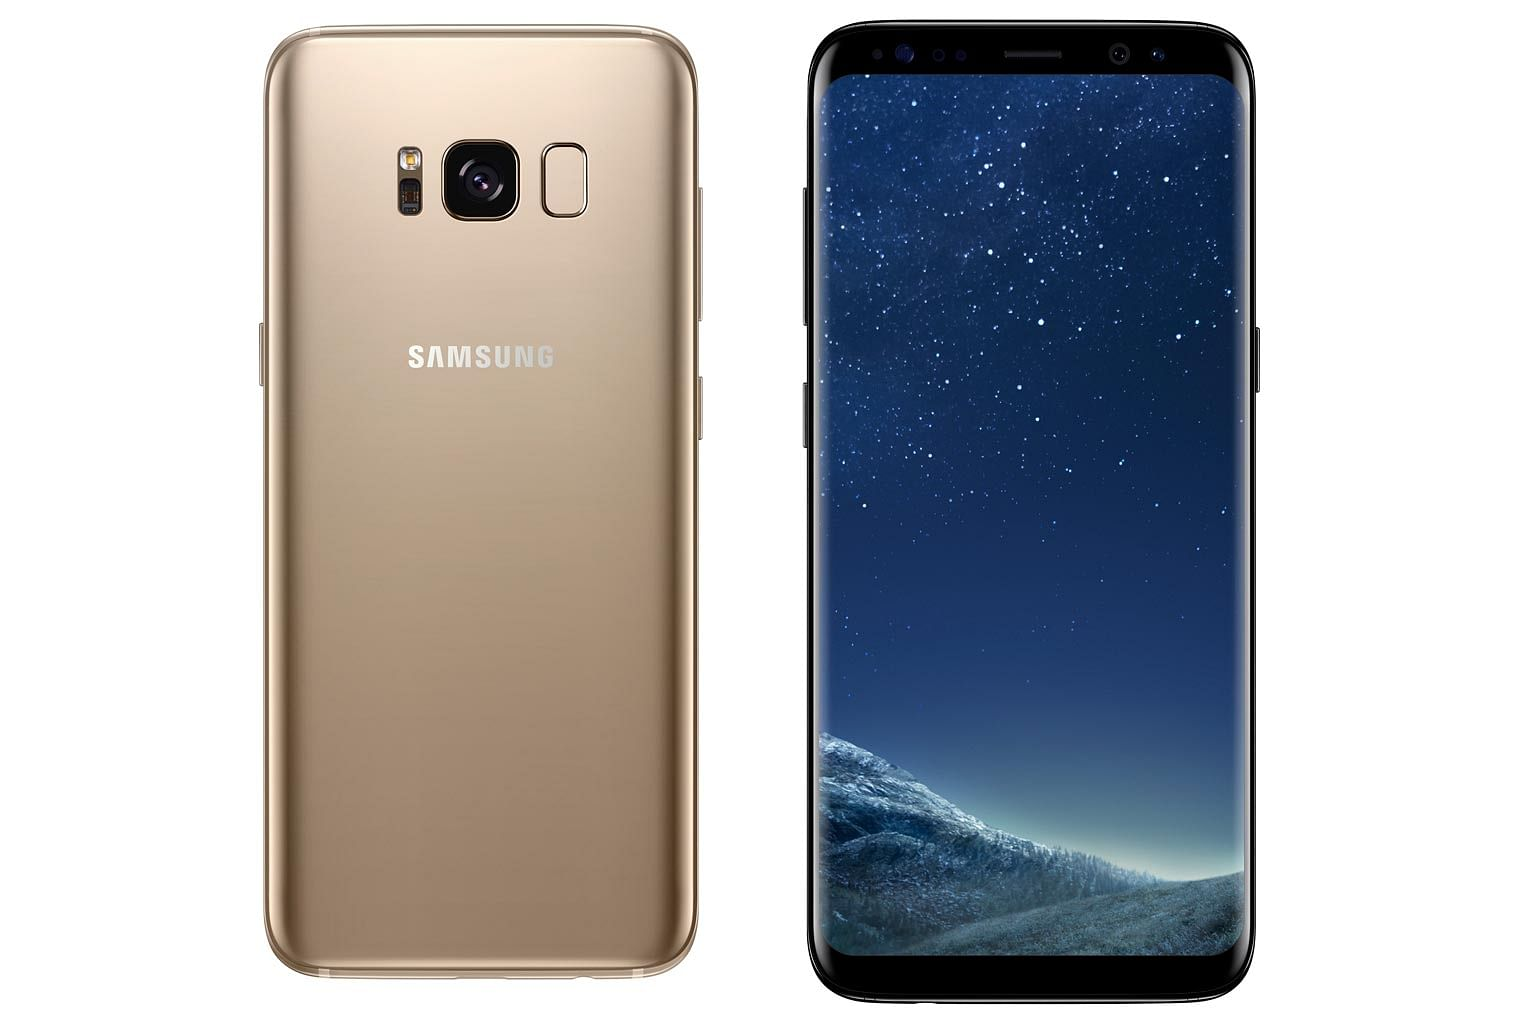 The Samsung Galaxy S8 smartphones have one of the sharpest cameras in the market.